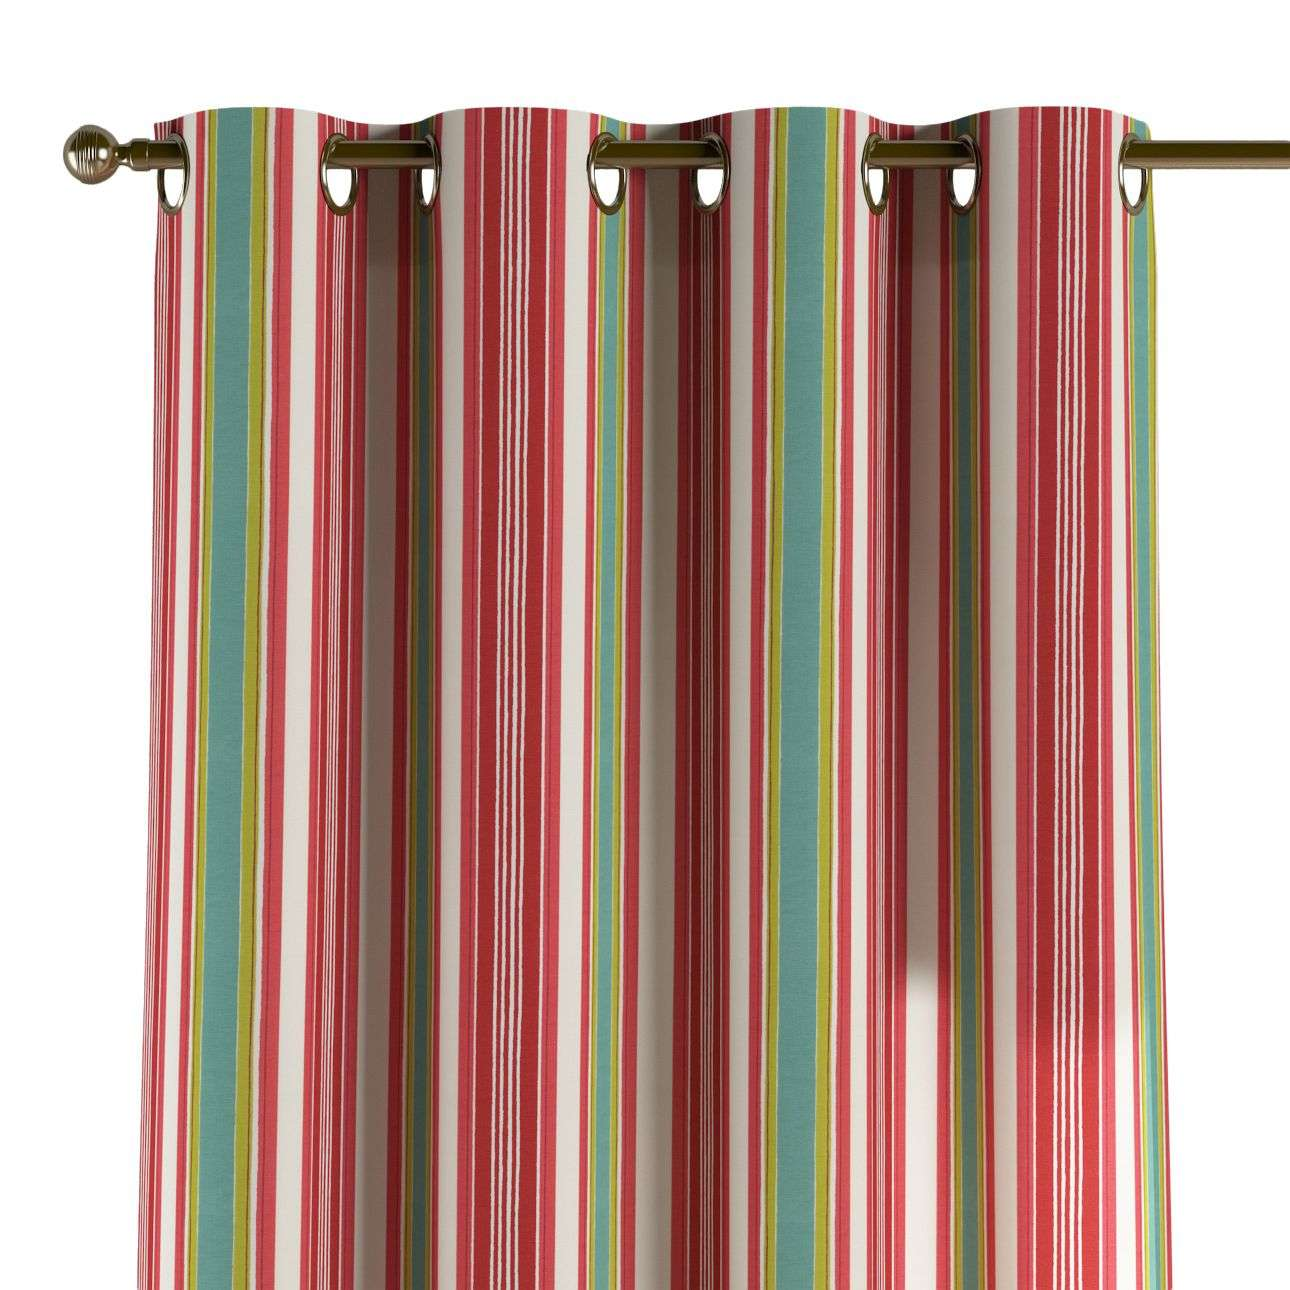 Eyelet curtains in collection Londres, fabric: 122-01